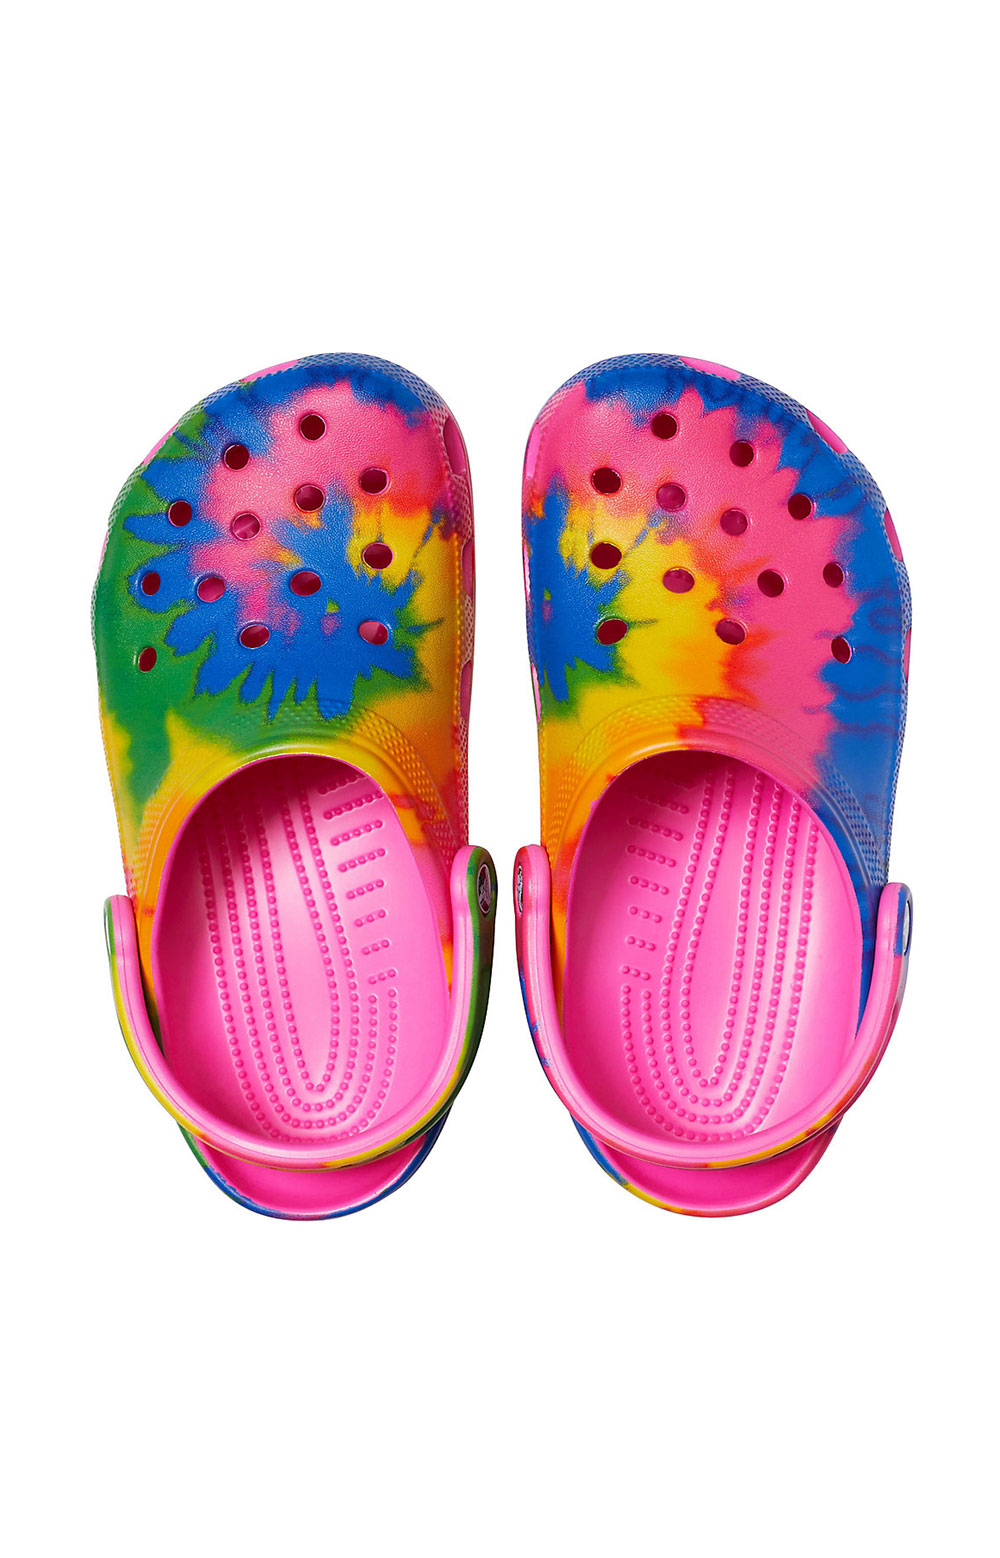 Classic Tie-Dye Graphic Clogs - Electric Pink/Multi 5